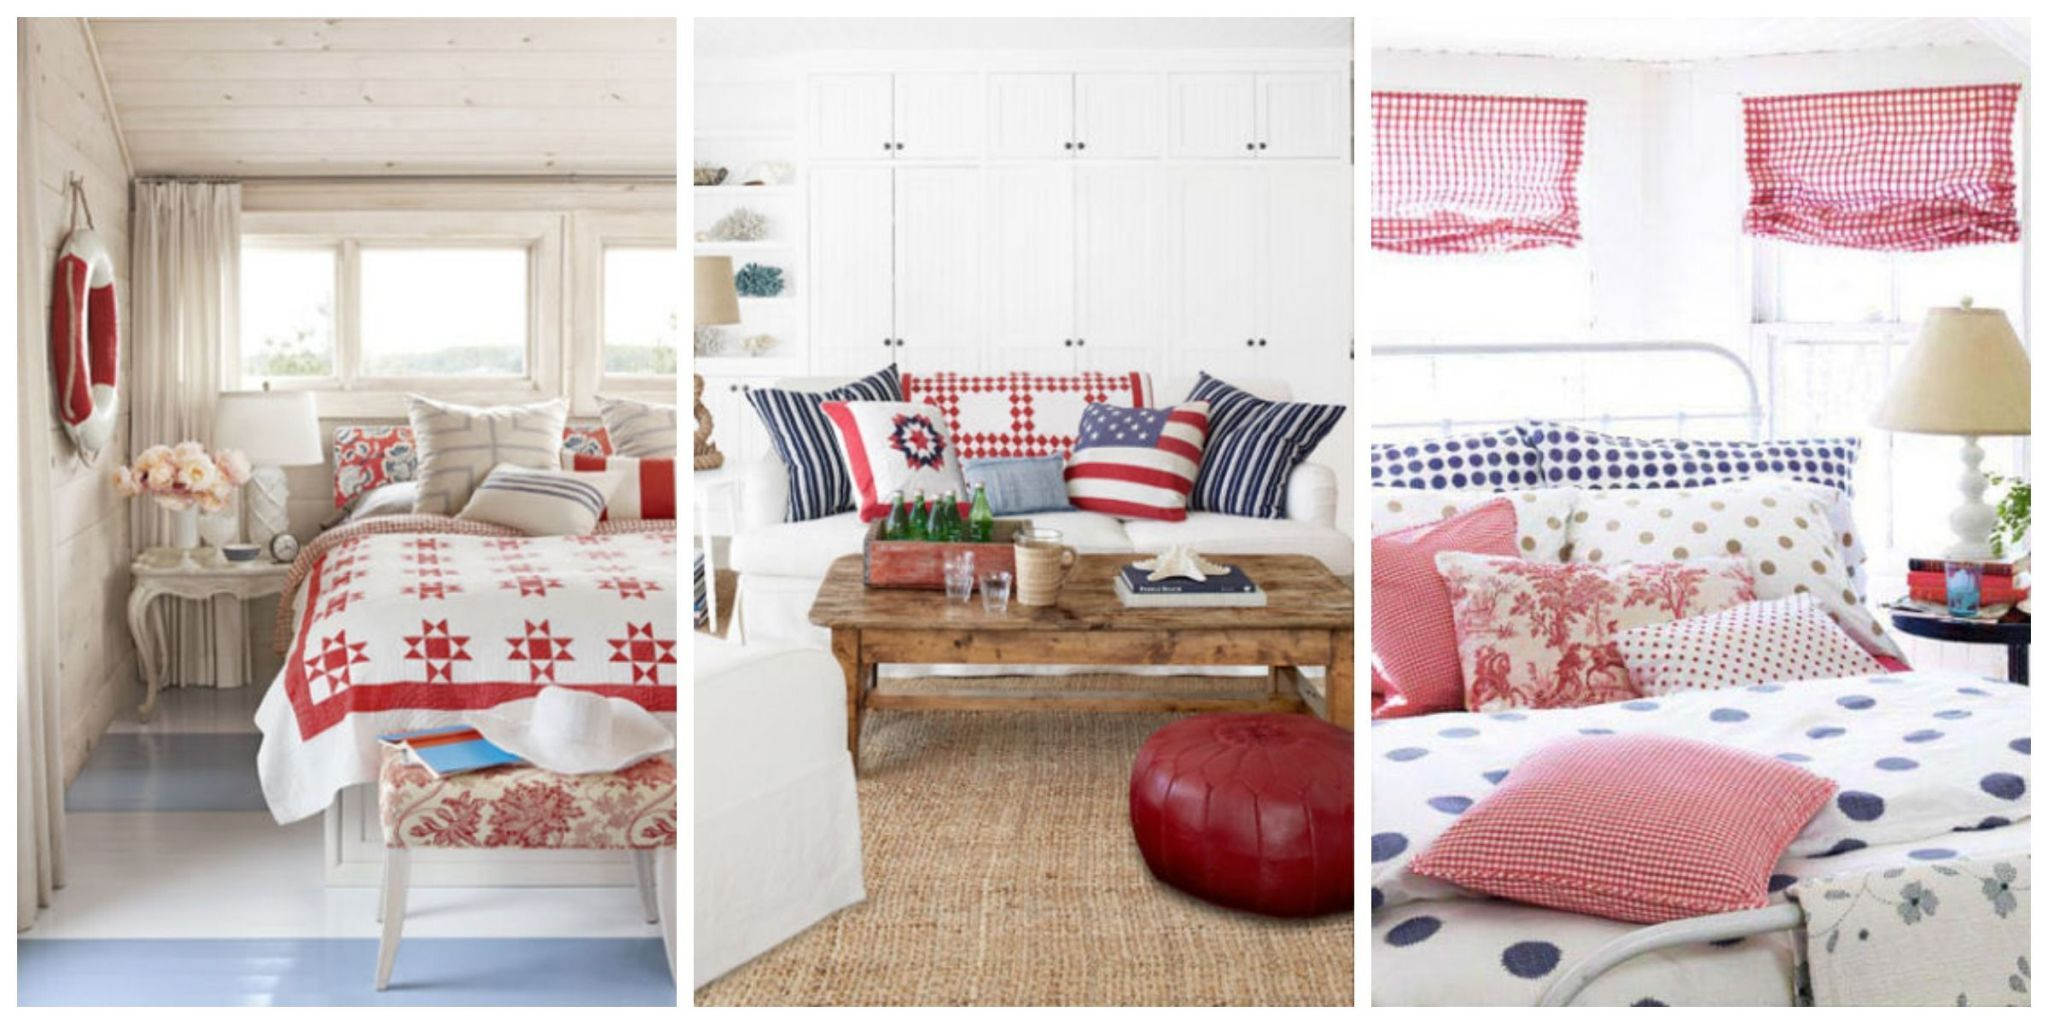 Ordinaire Display Your Stars And Stripes Style With These Patriotic Decorating Ideas.